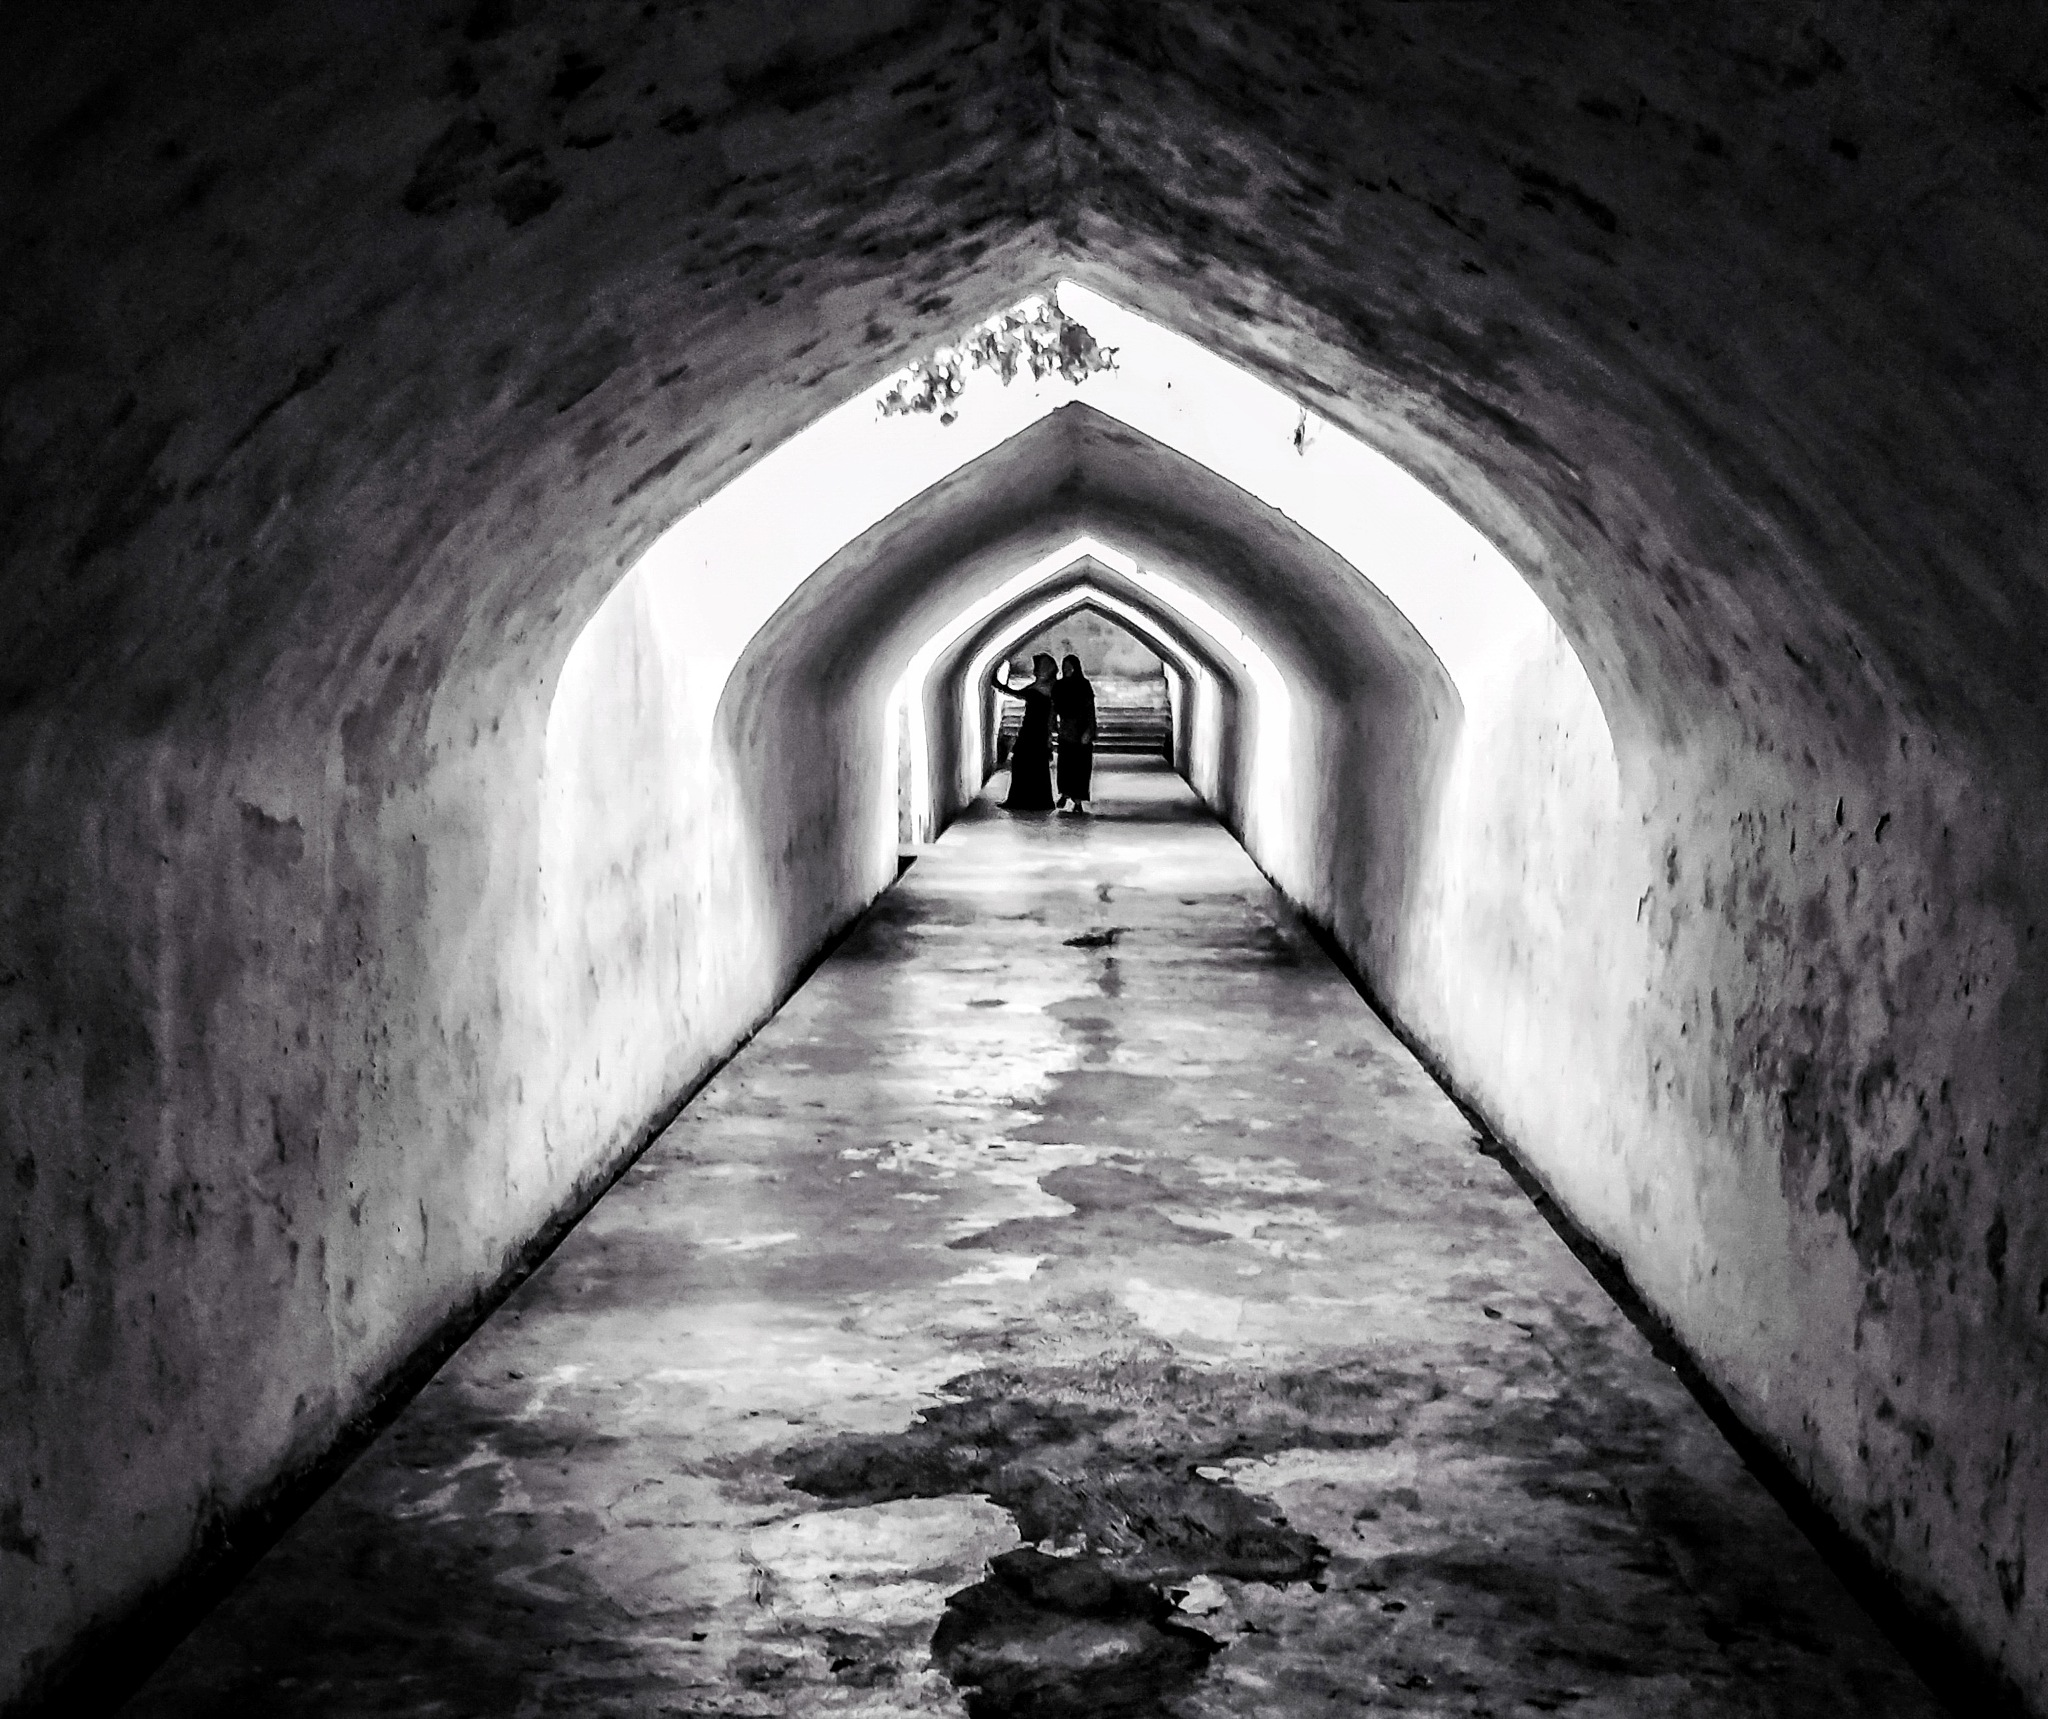 The Tunnel by Rendy H